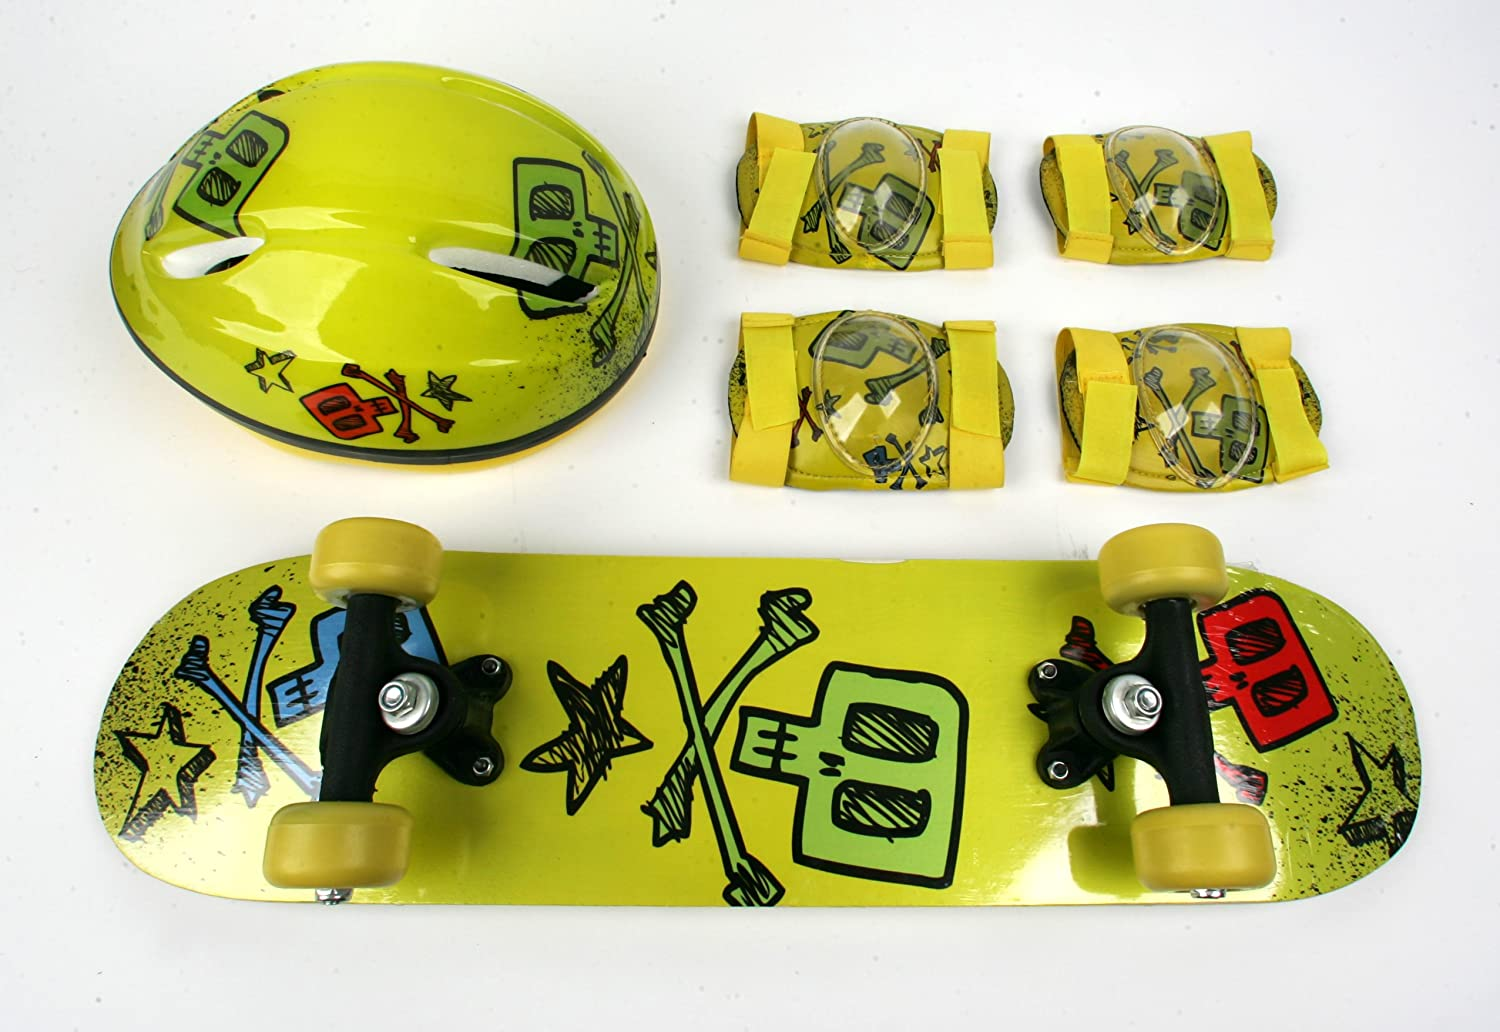 Kids Skateboard Combo Pack with Board, Helmet, Knee and Elbow Pads Yellow Skull design